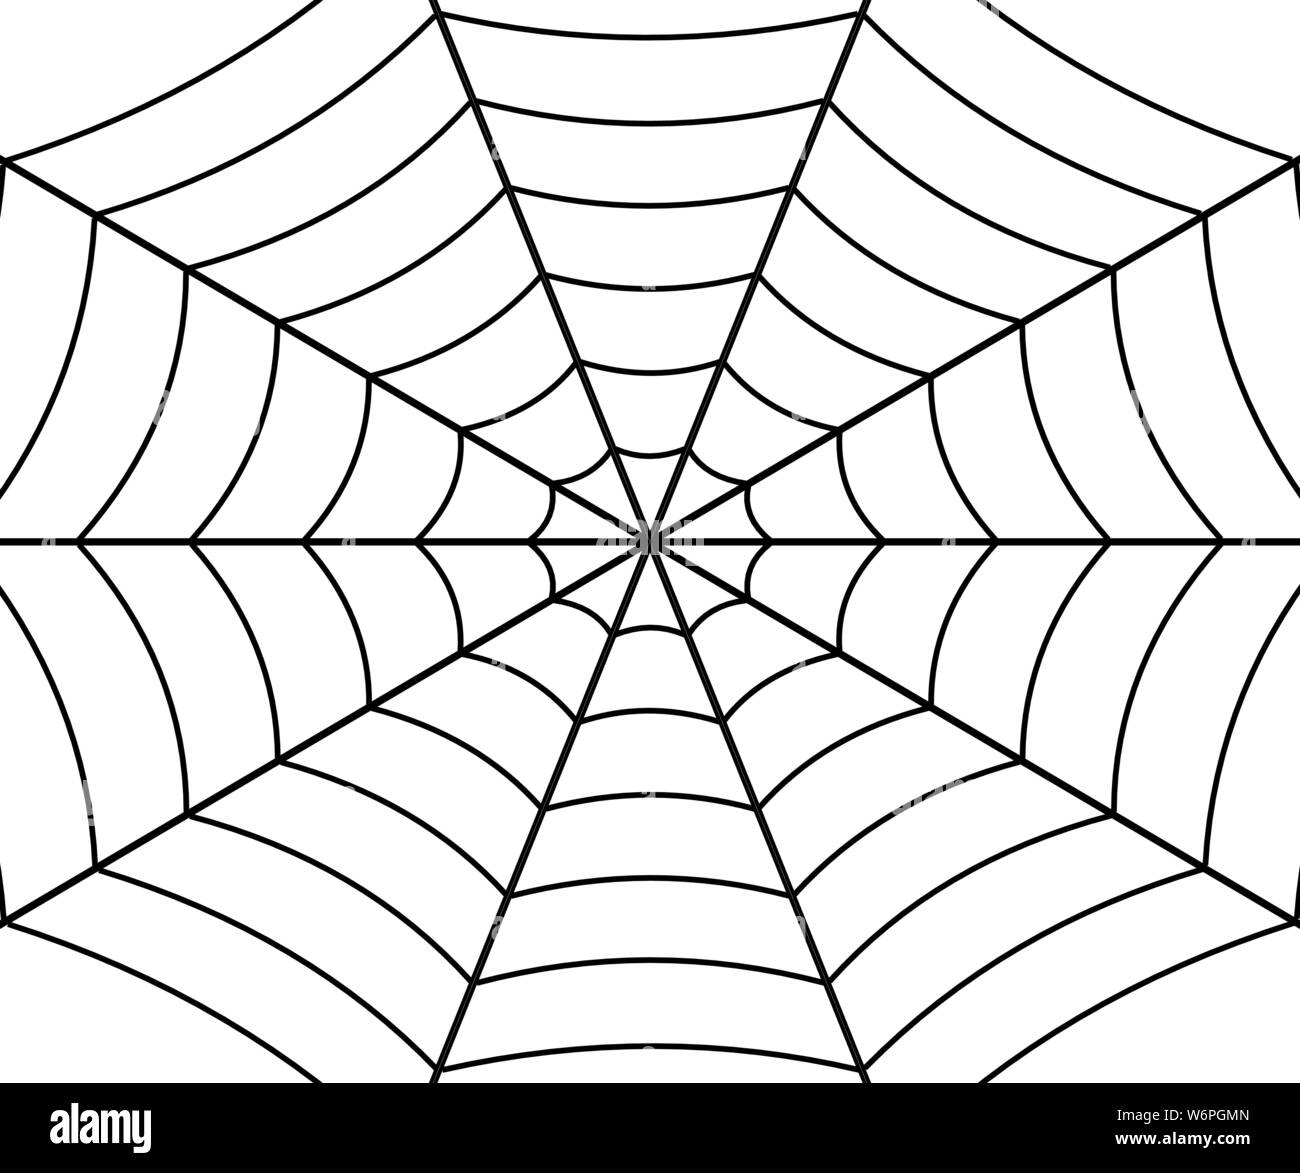 This is a photo of Bewitching Spider Web Template Printable